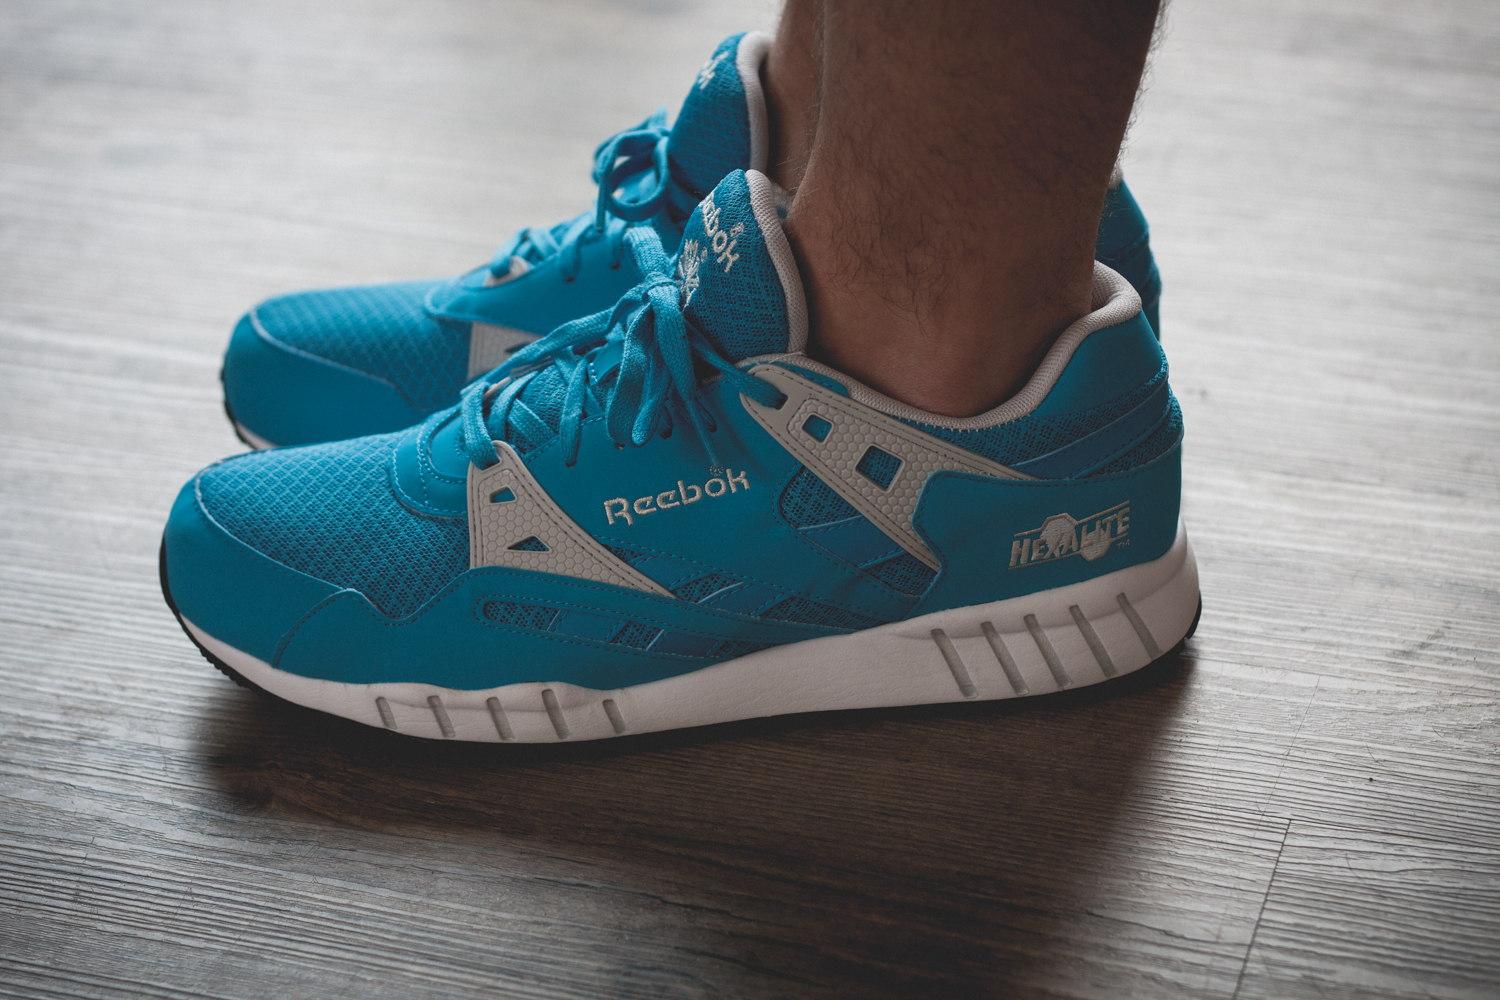 Reebok Sole Trainer Blue review 1